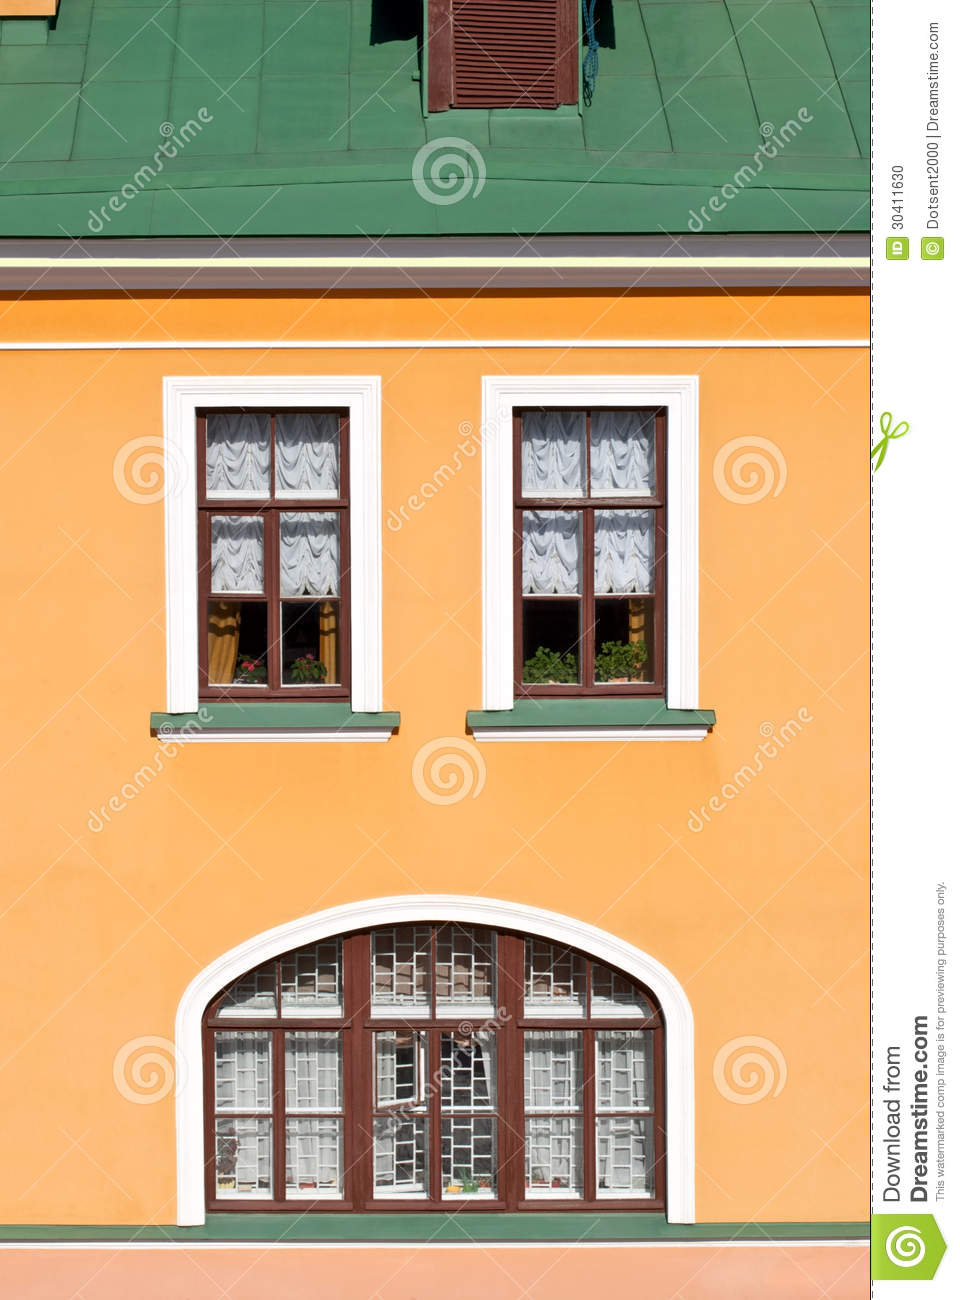 Business Design A House And Window: House Facade With Windows. Stock Photo